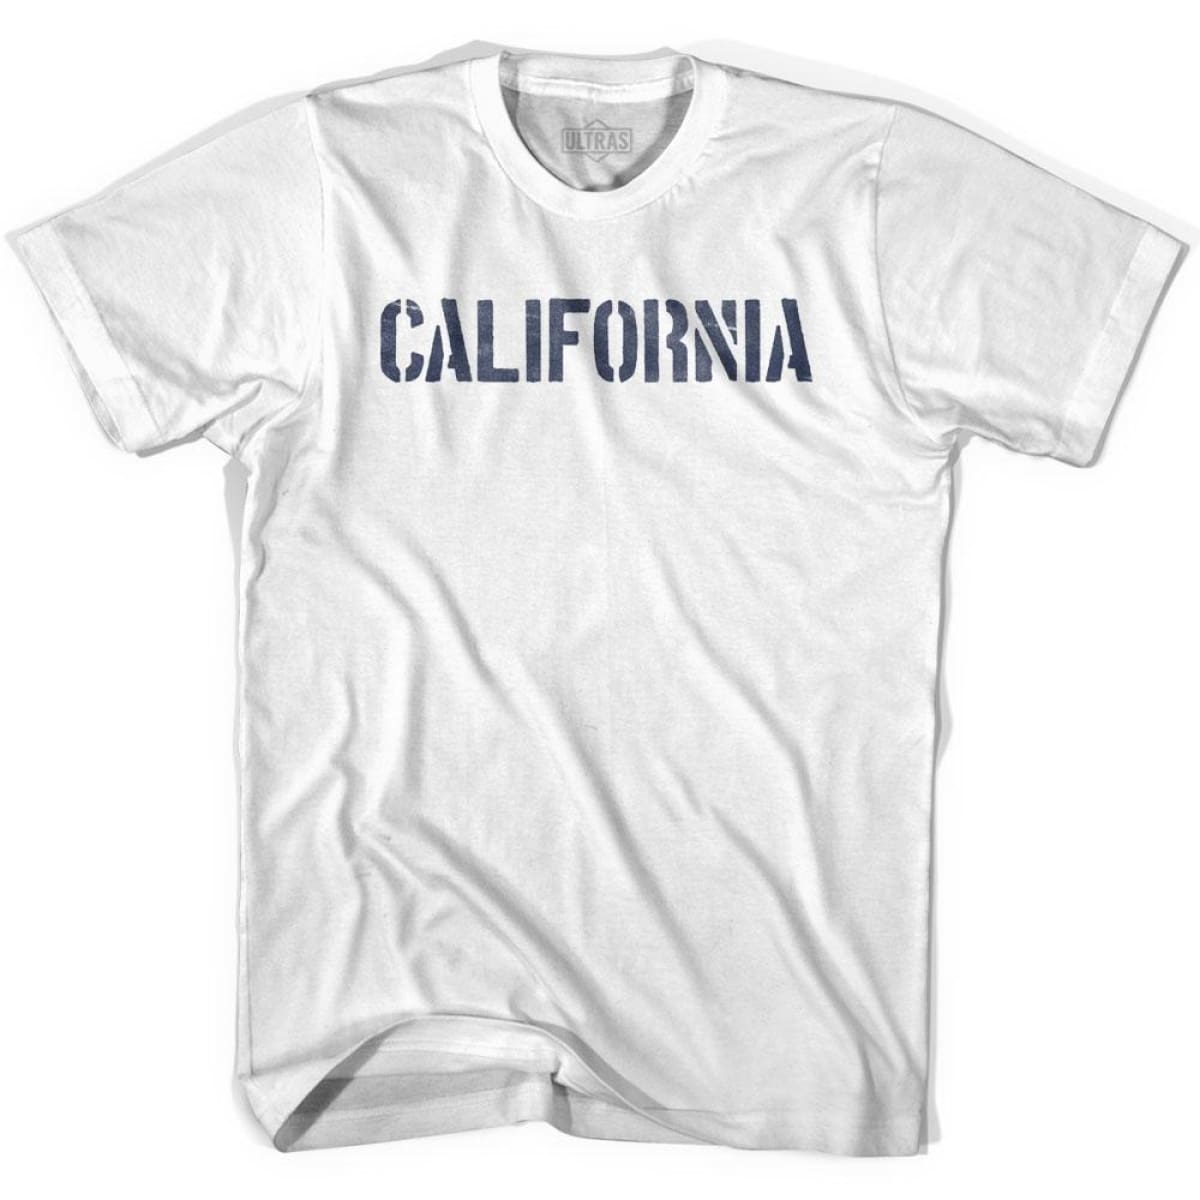 California State Stencil Adult Cotton T-shirt - White / Adult Small - Stencil State